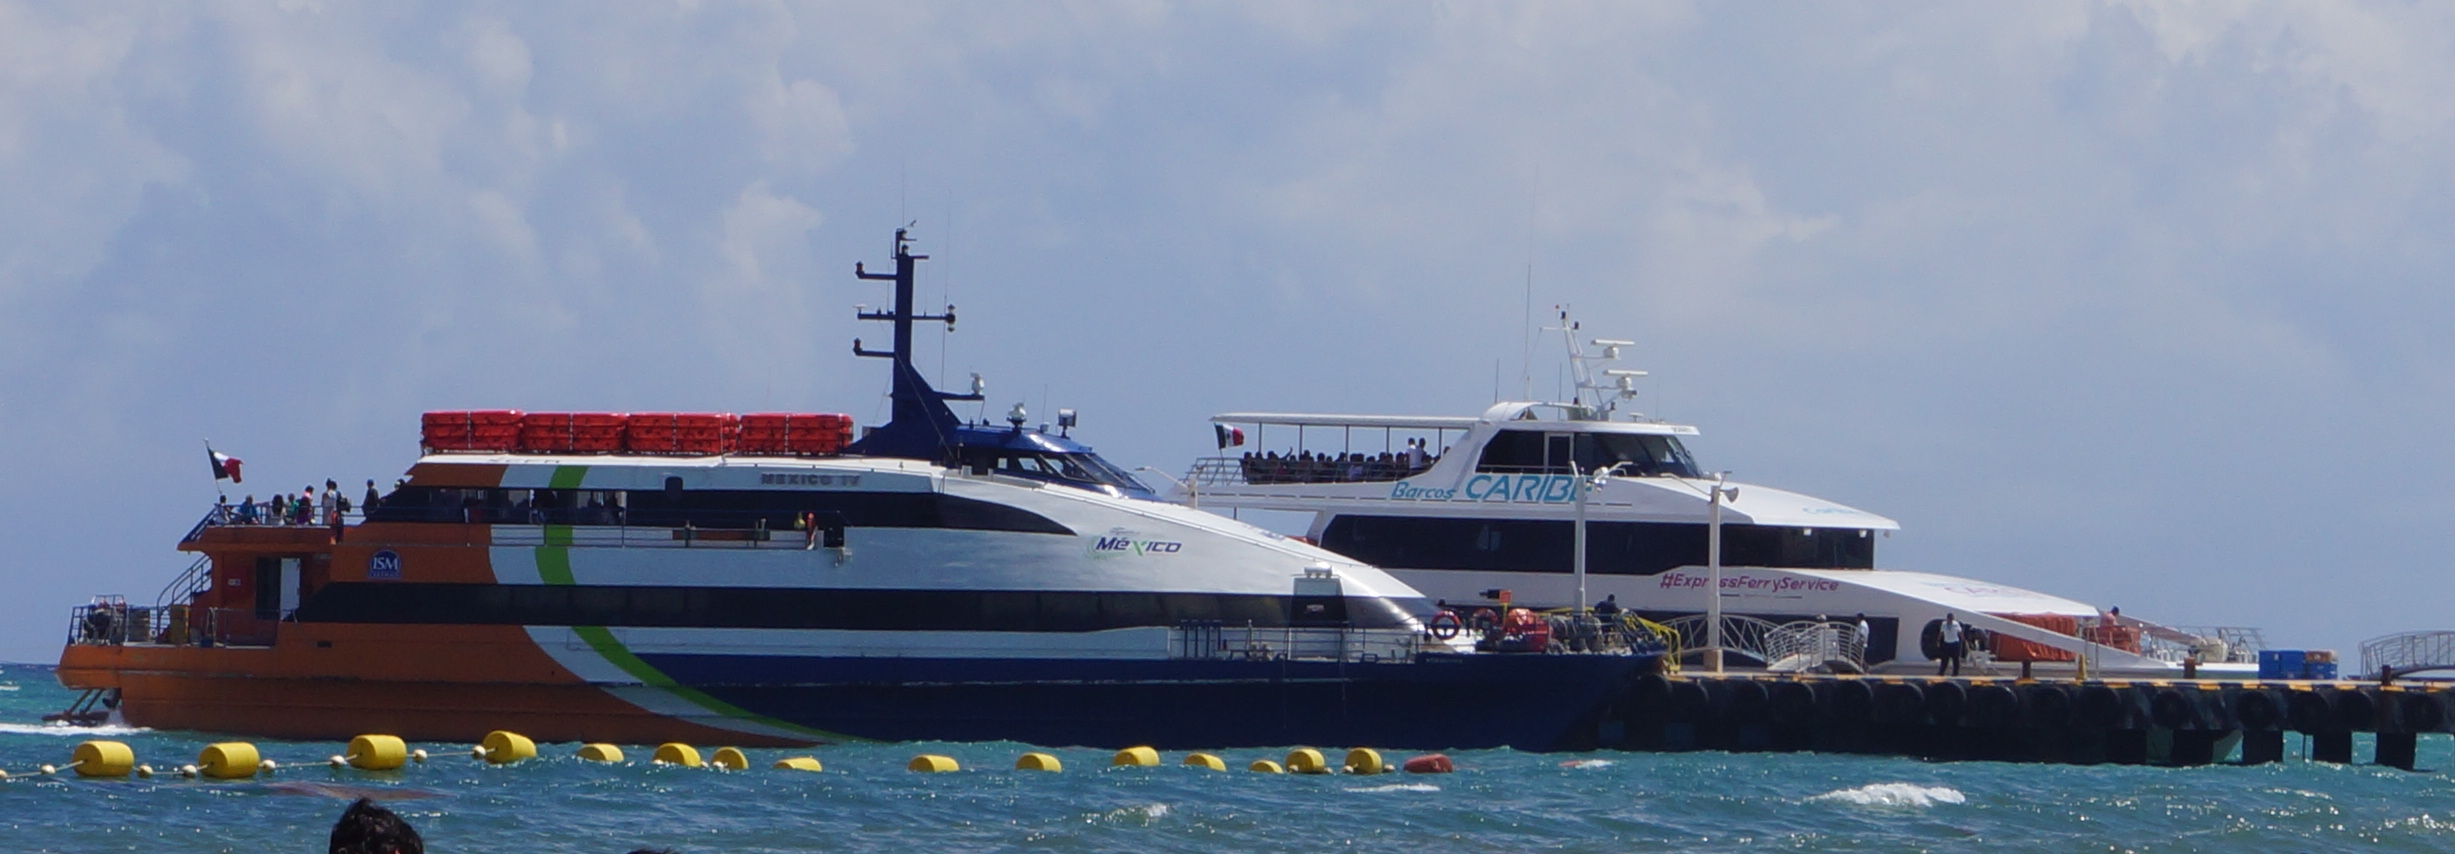 Two ferries parked at dock in Playa Del Carmen.